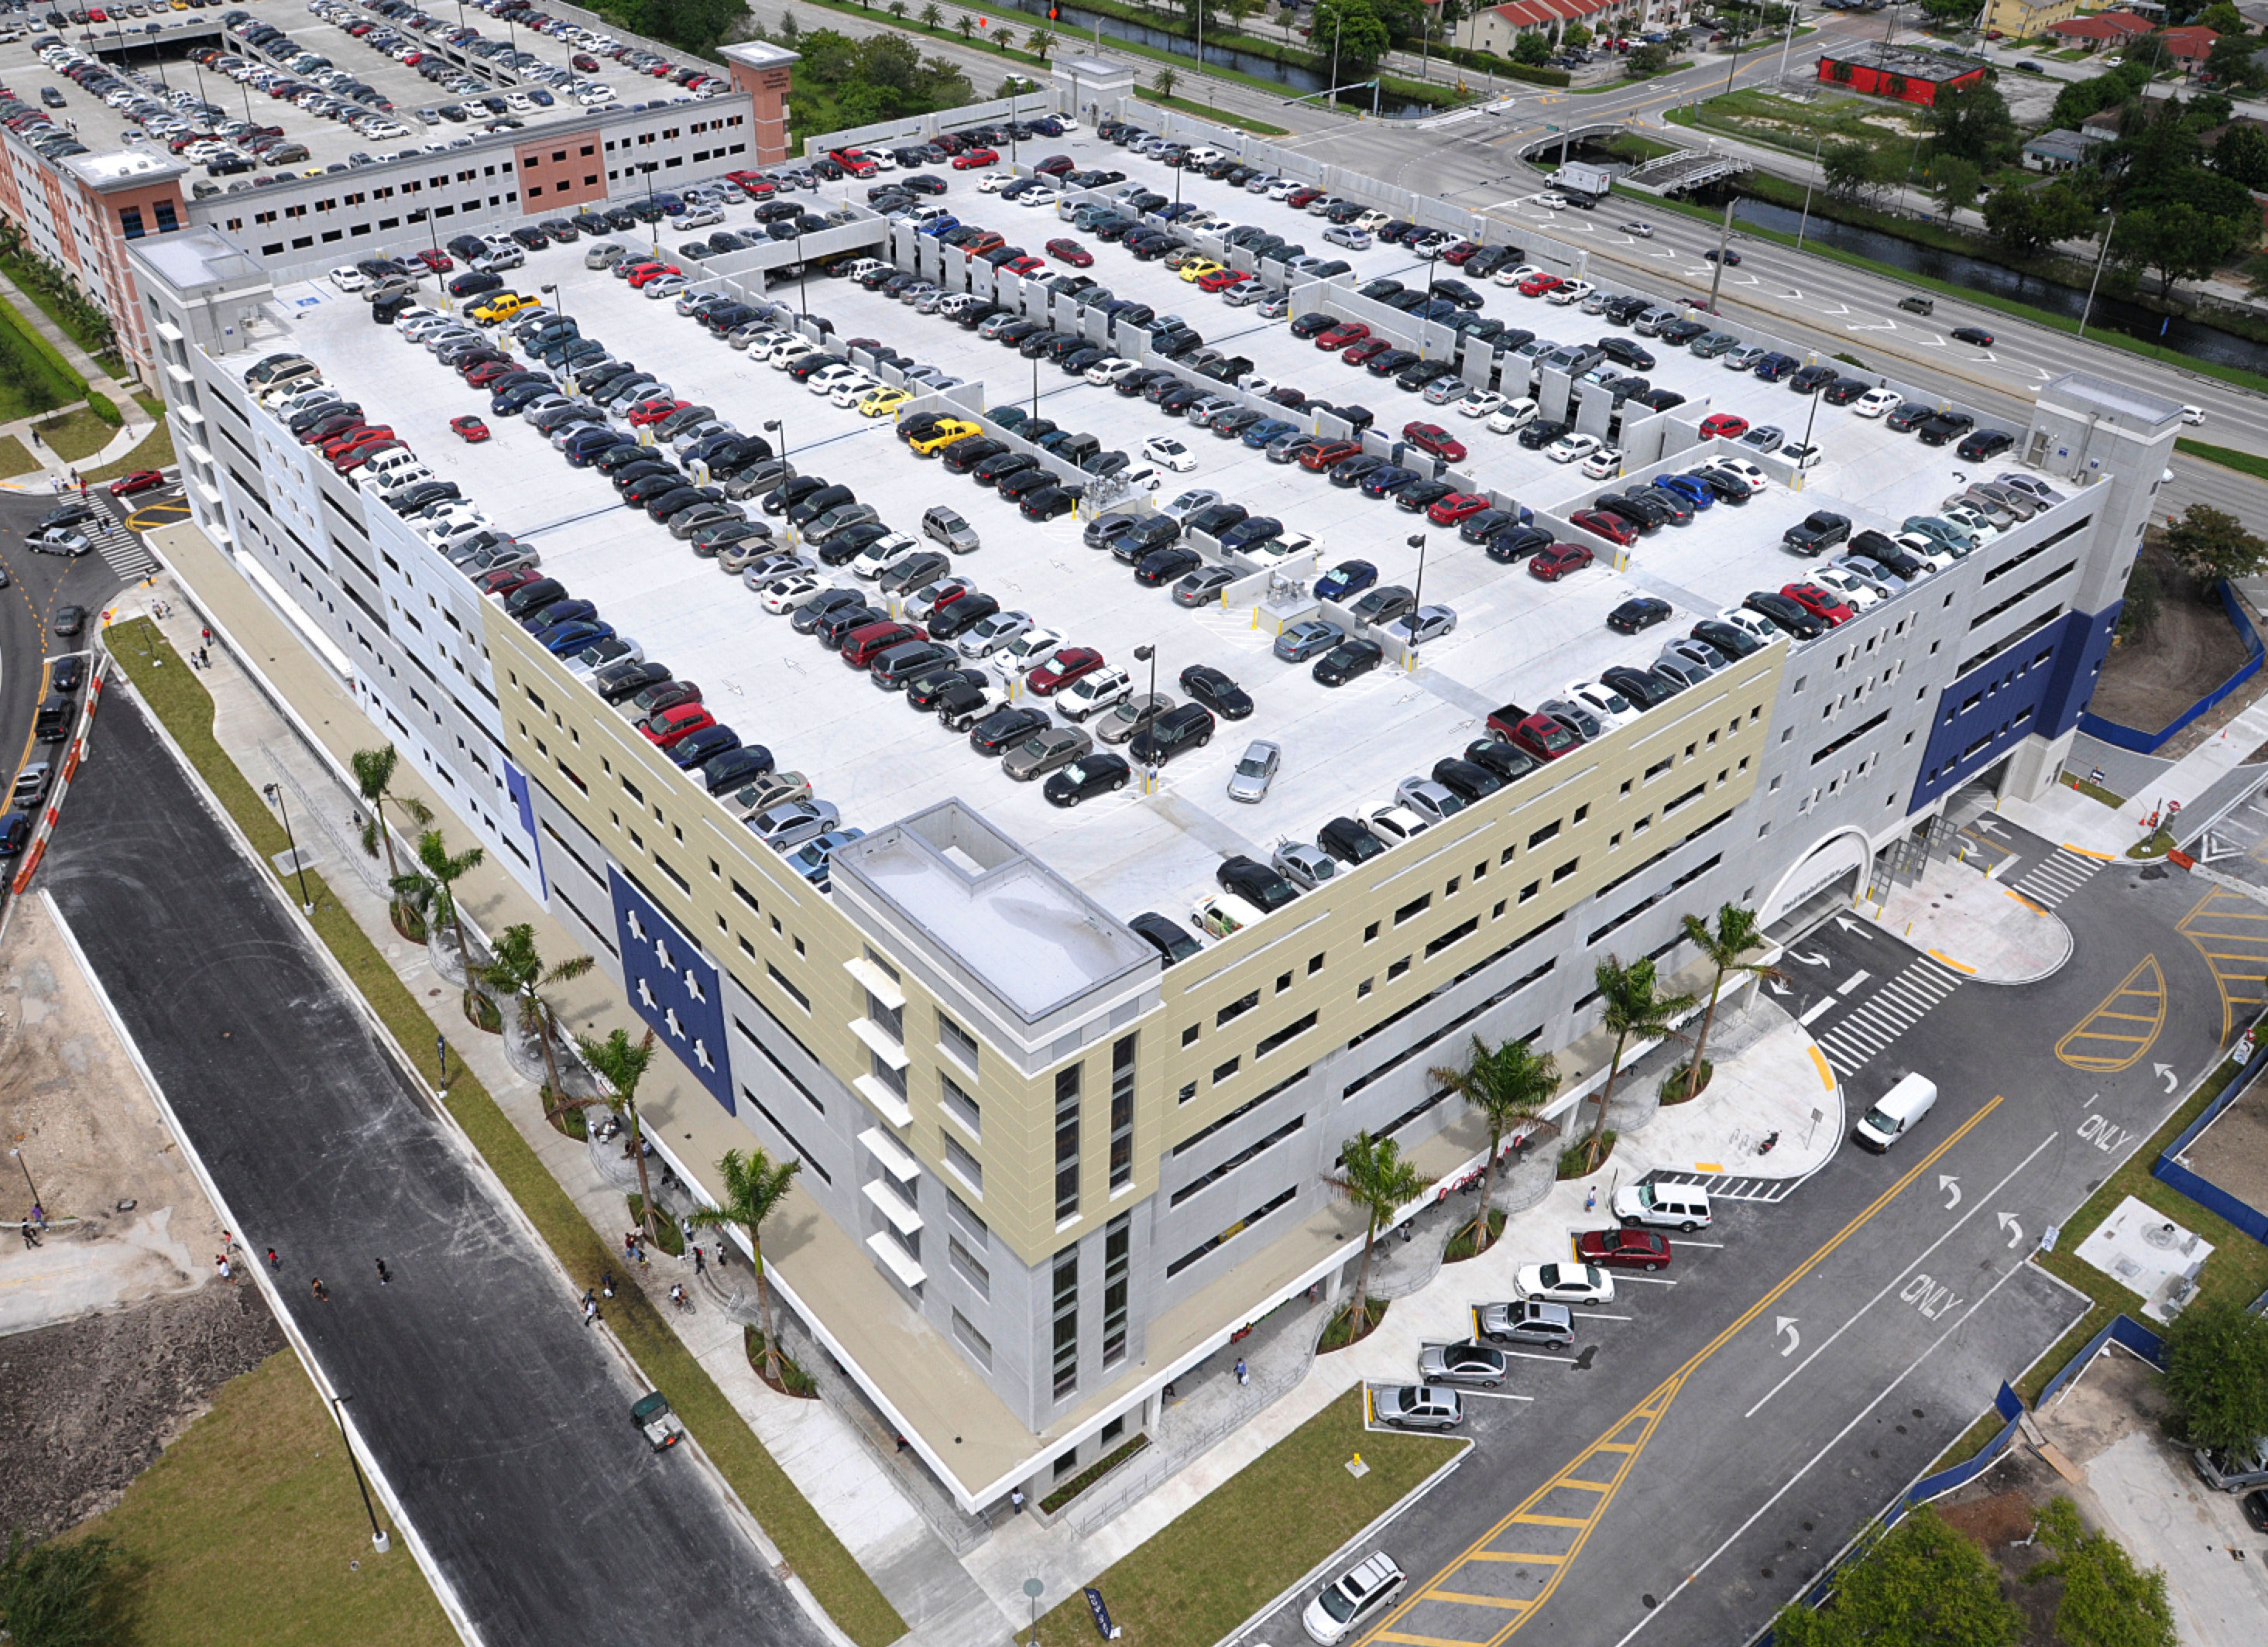 Precast Concrete Supplier Miami Florida Coreslab Make Your Own Beautiful  HD Wallpapers, Images Over 1000+ [ralydesign.ml]